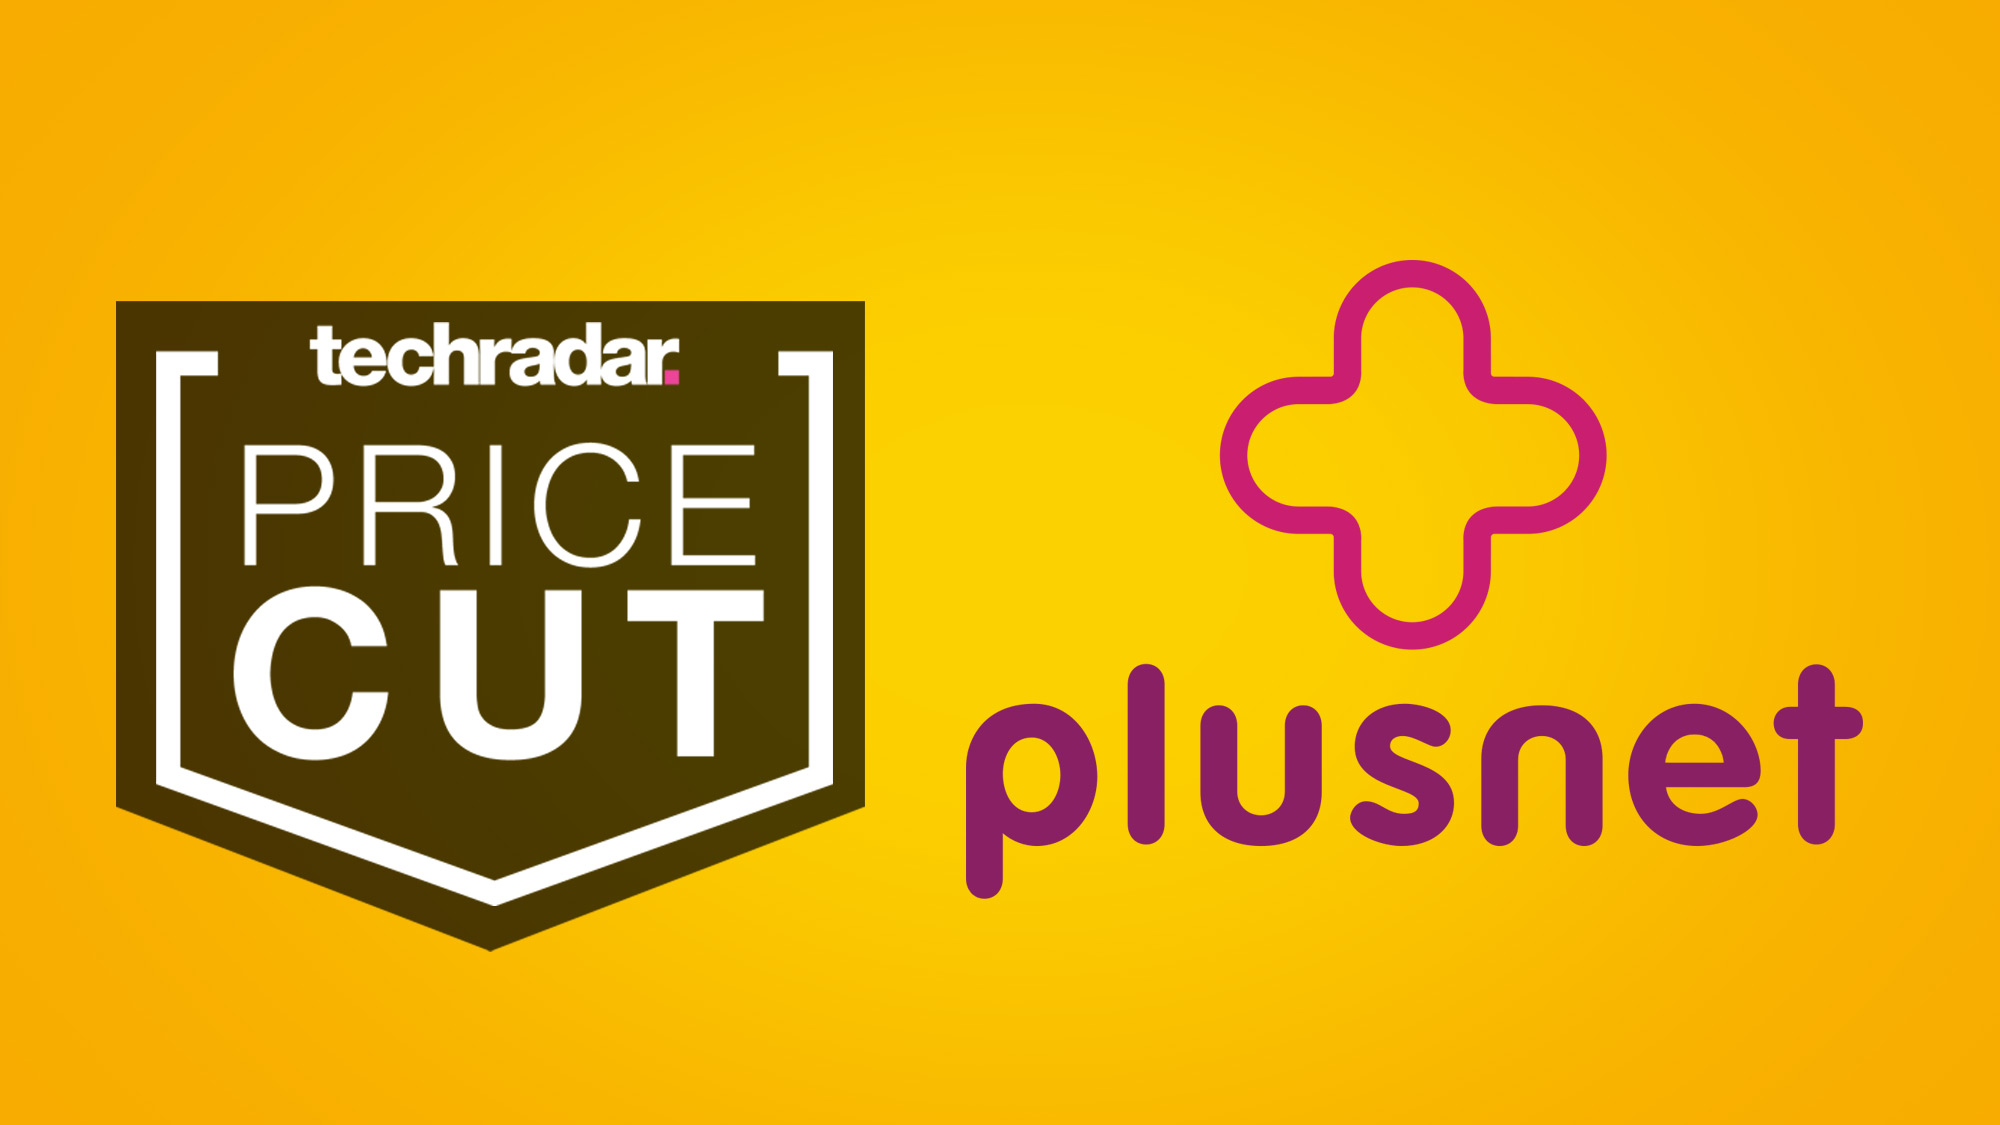 Get the UK's cheapest broadband deals this weekend with Plusnet's bargains thumbnail